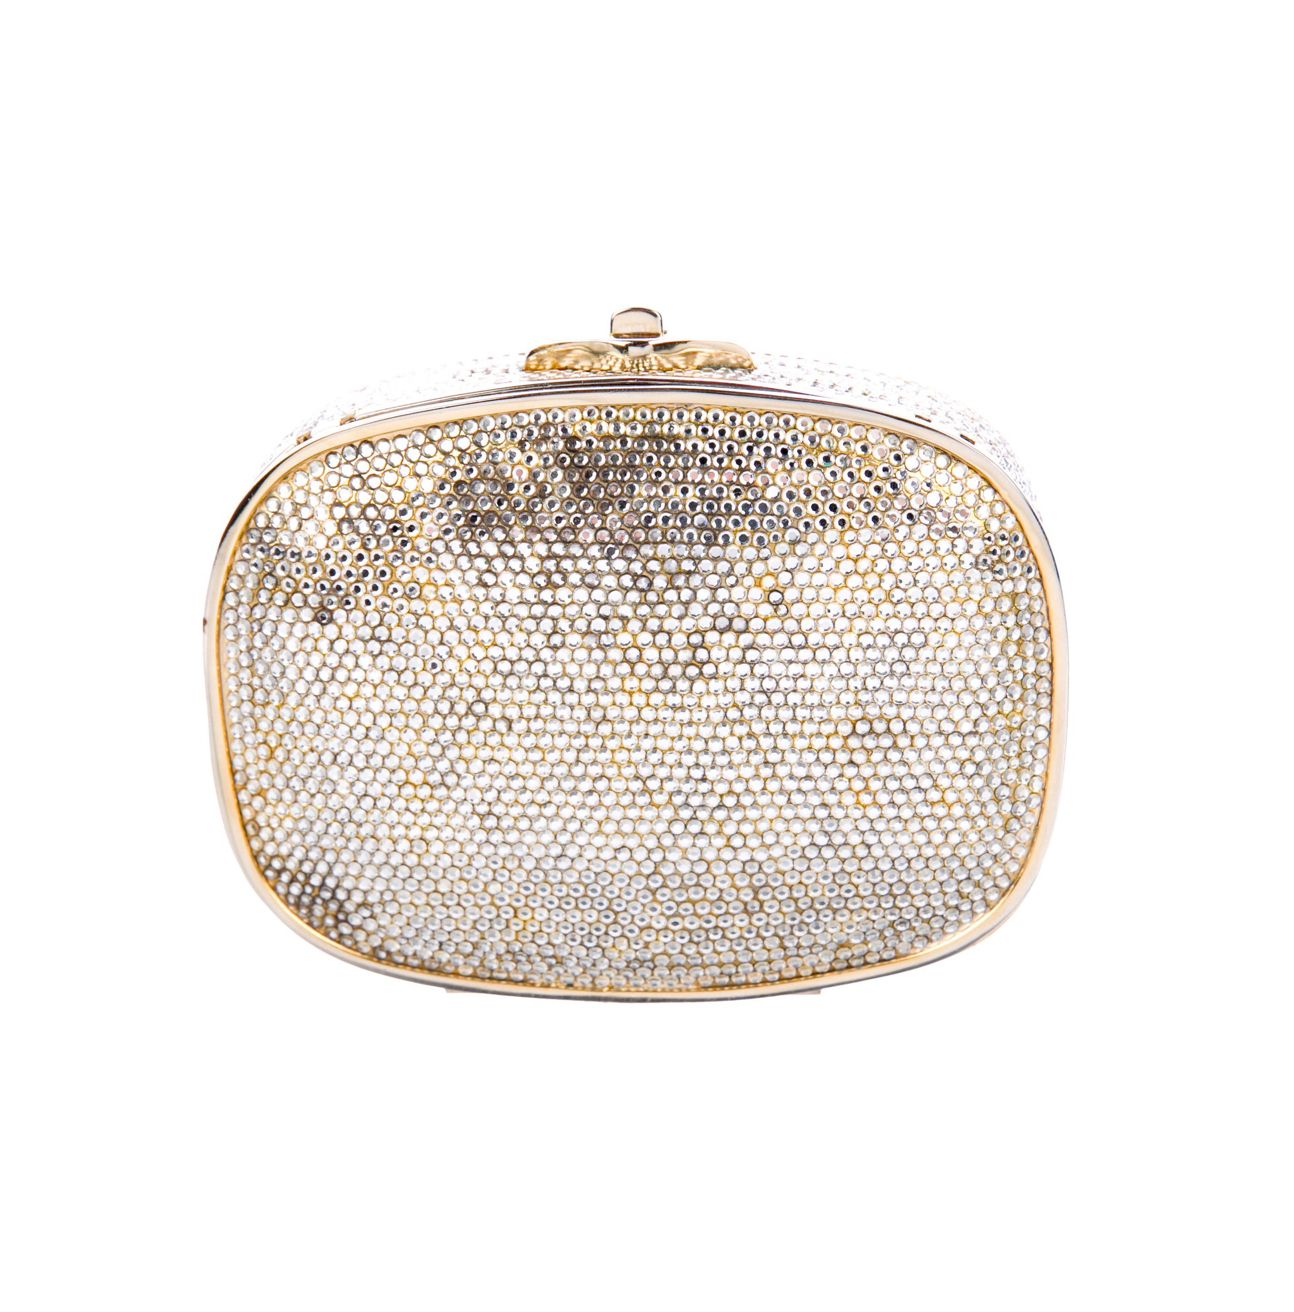 ac50c3591c80d5 Judith Leiber: Crystal-Embellished Minaudiere